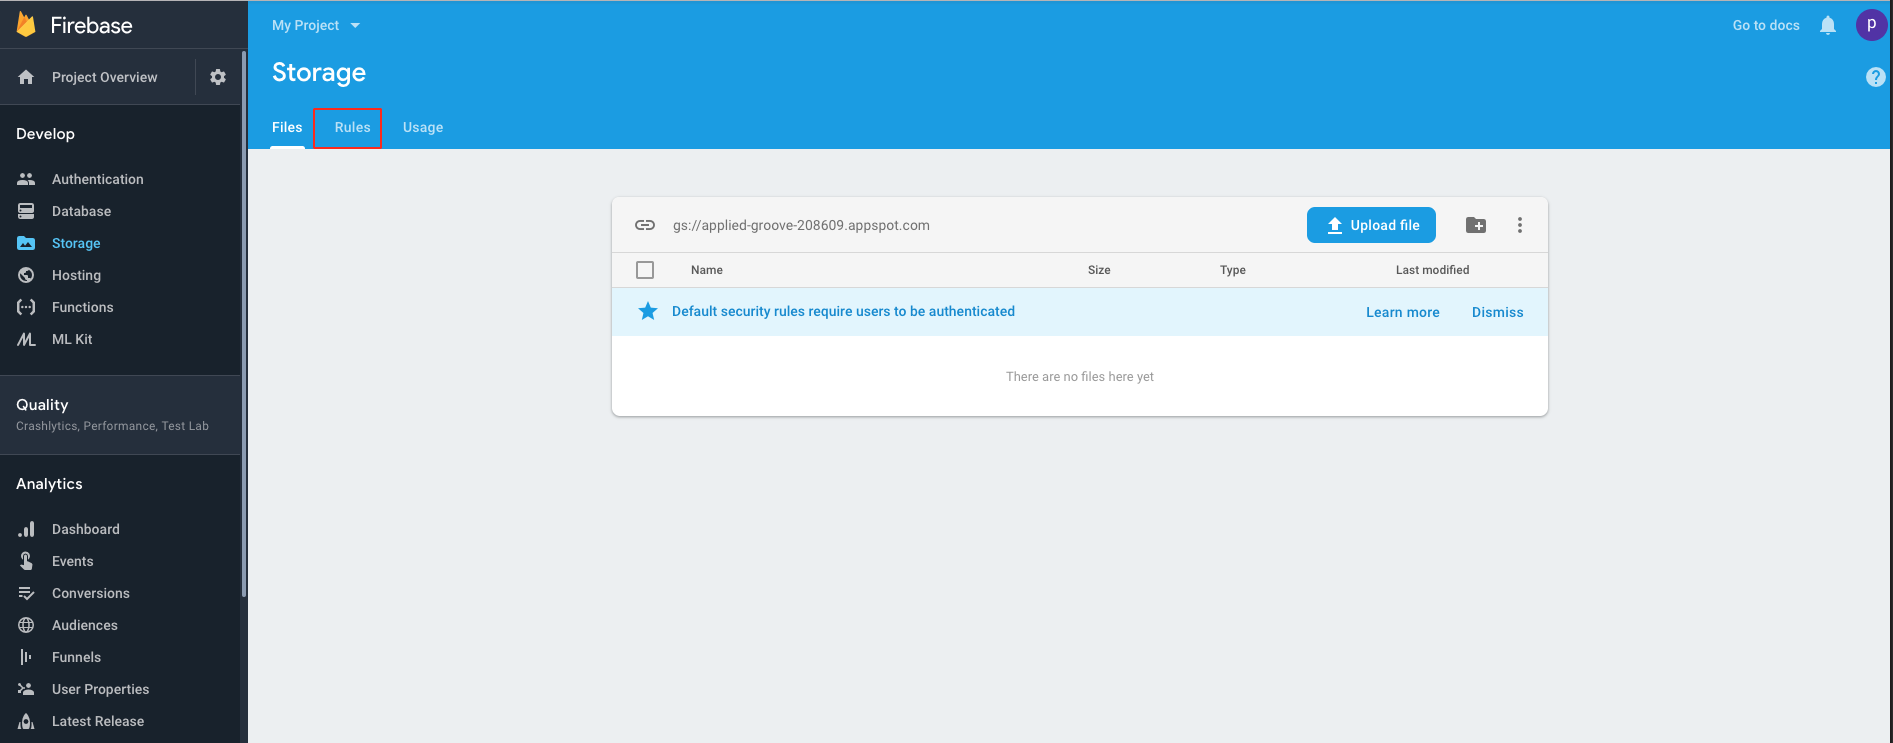 How can I get API Key, Auth Domain and Database URL from my Firebase